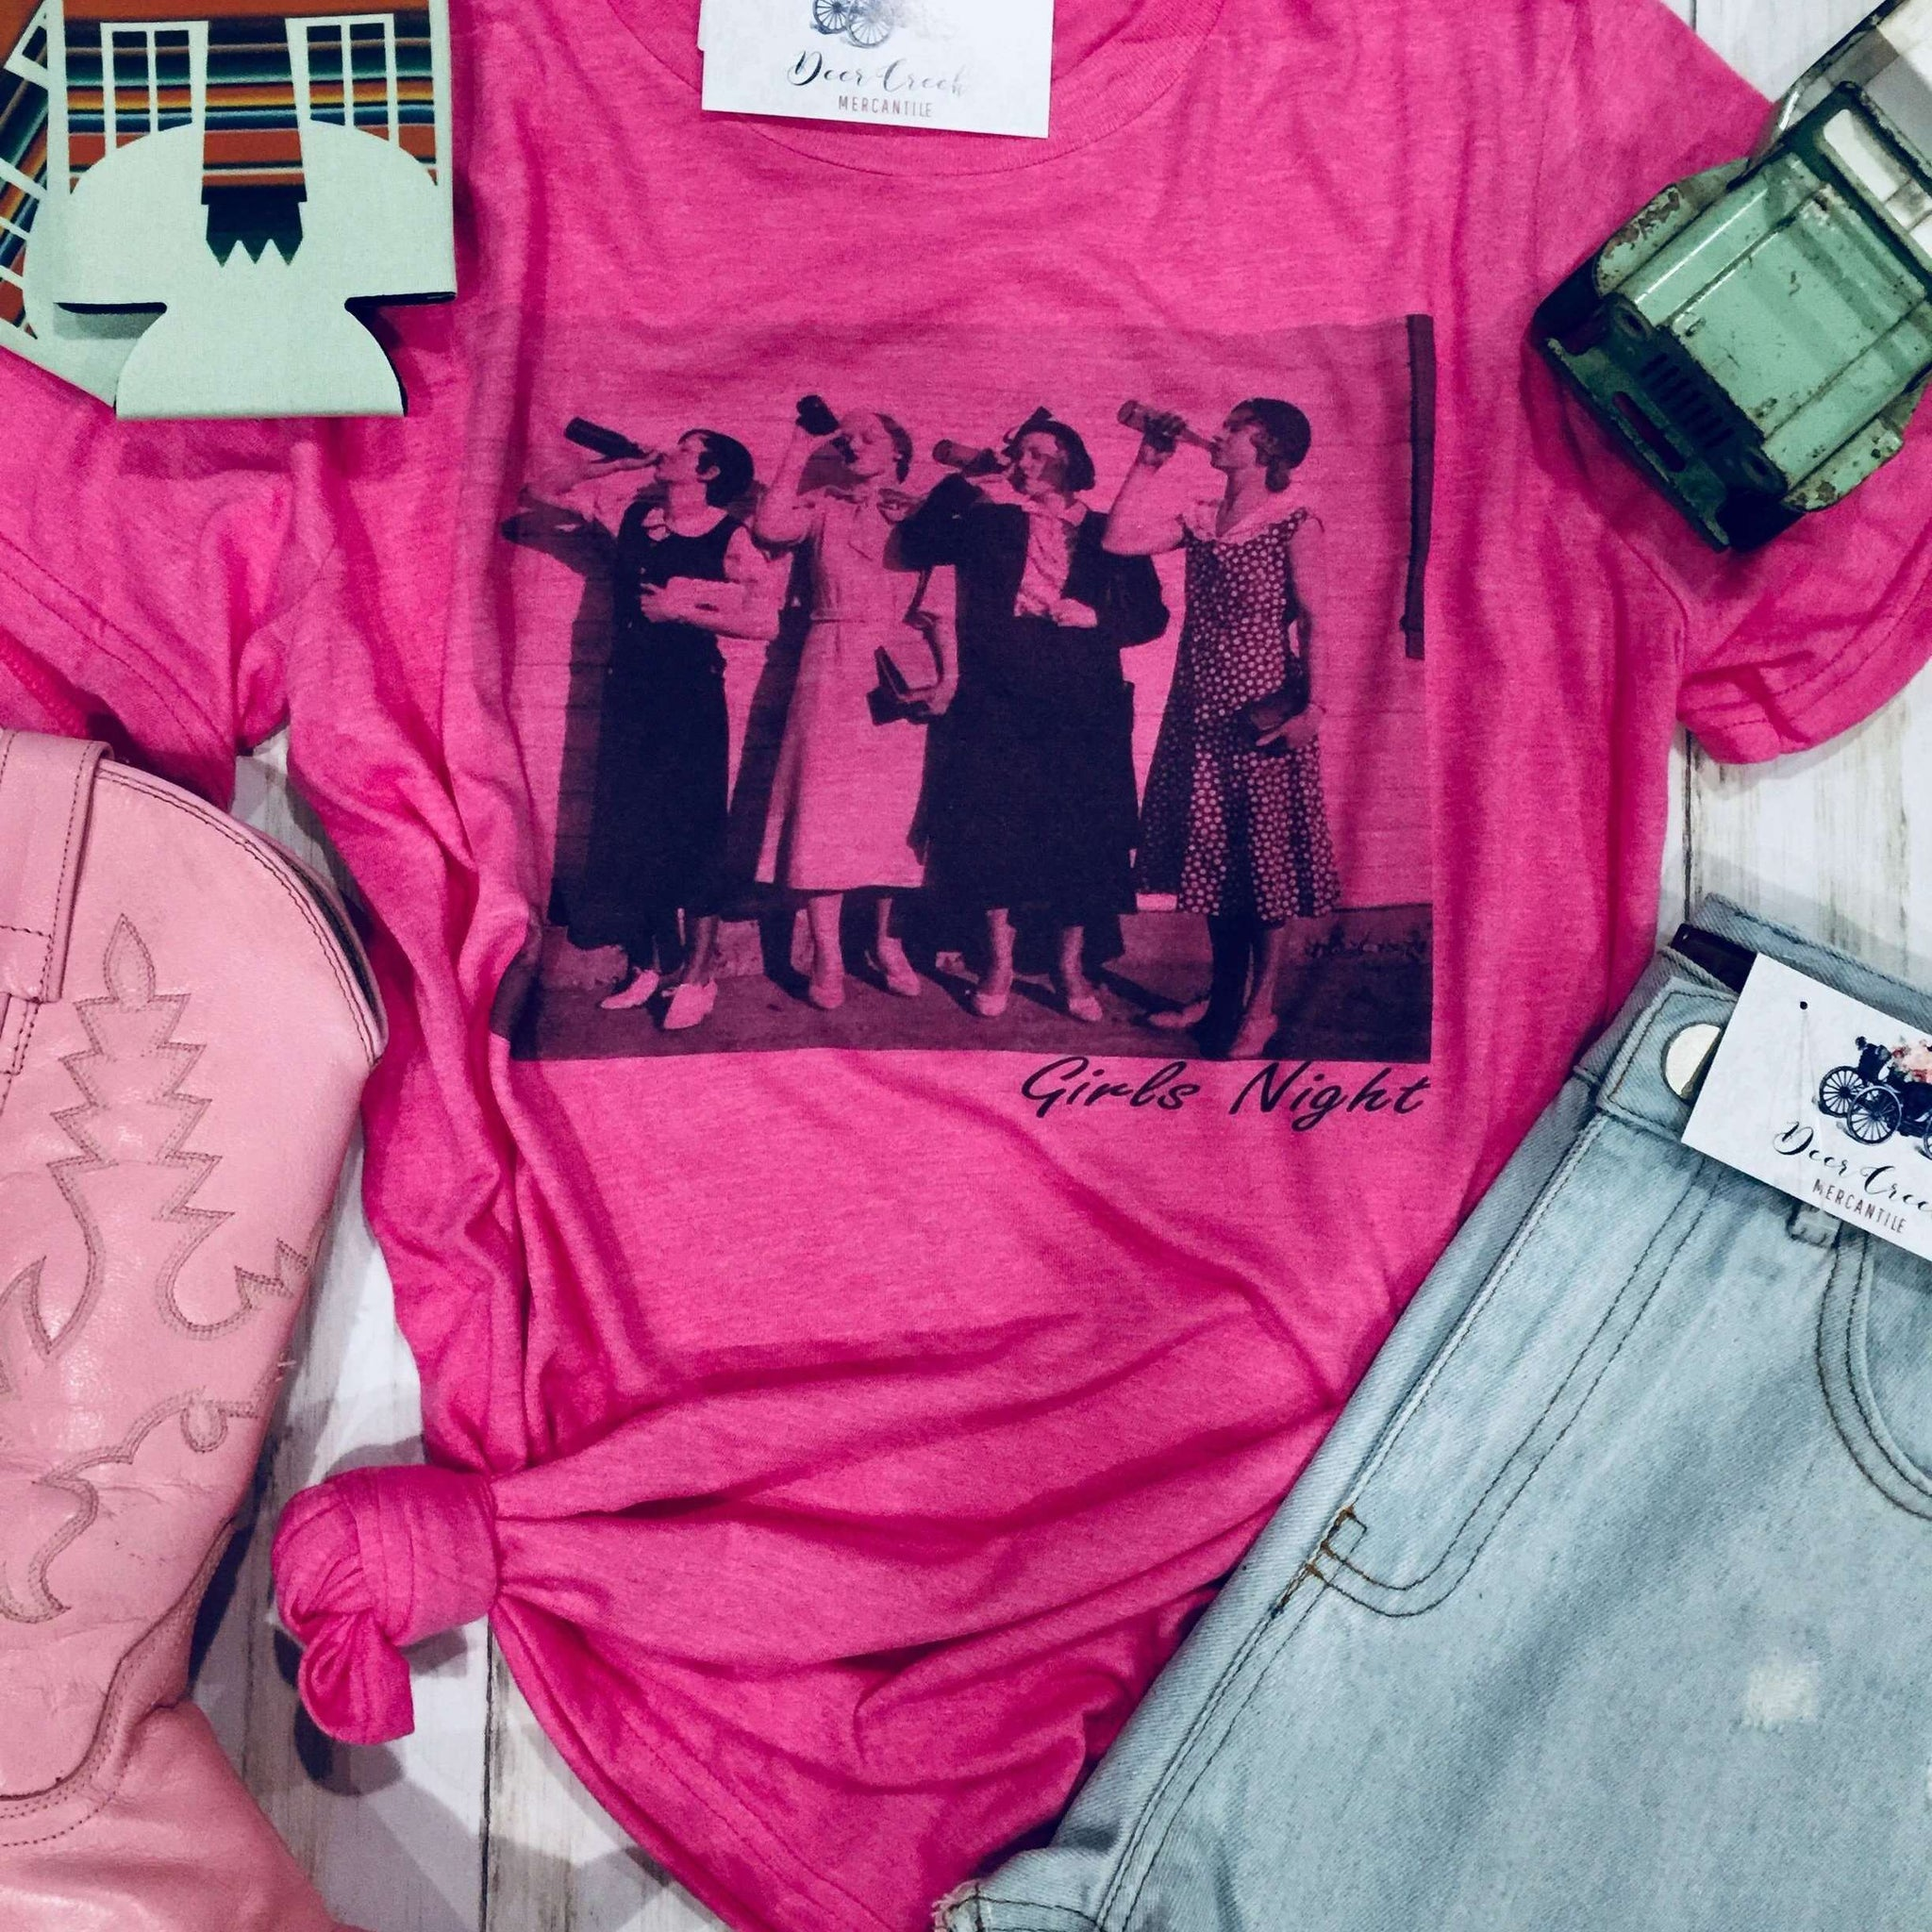 THE VINTAGE PARTY GIRLS HOT PINK GRAPHIC TEE